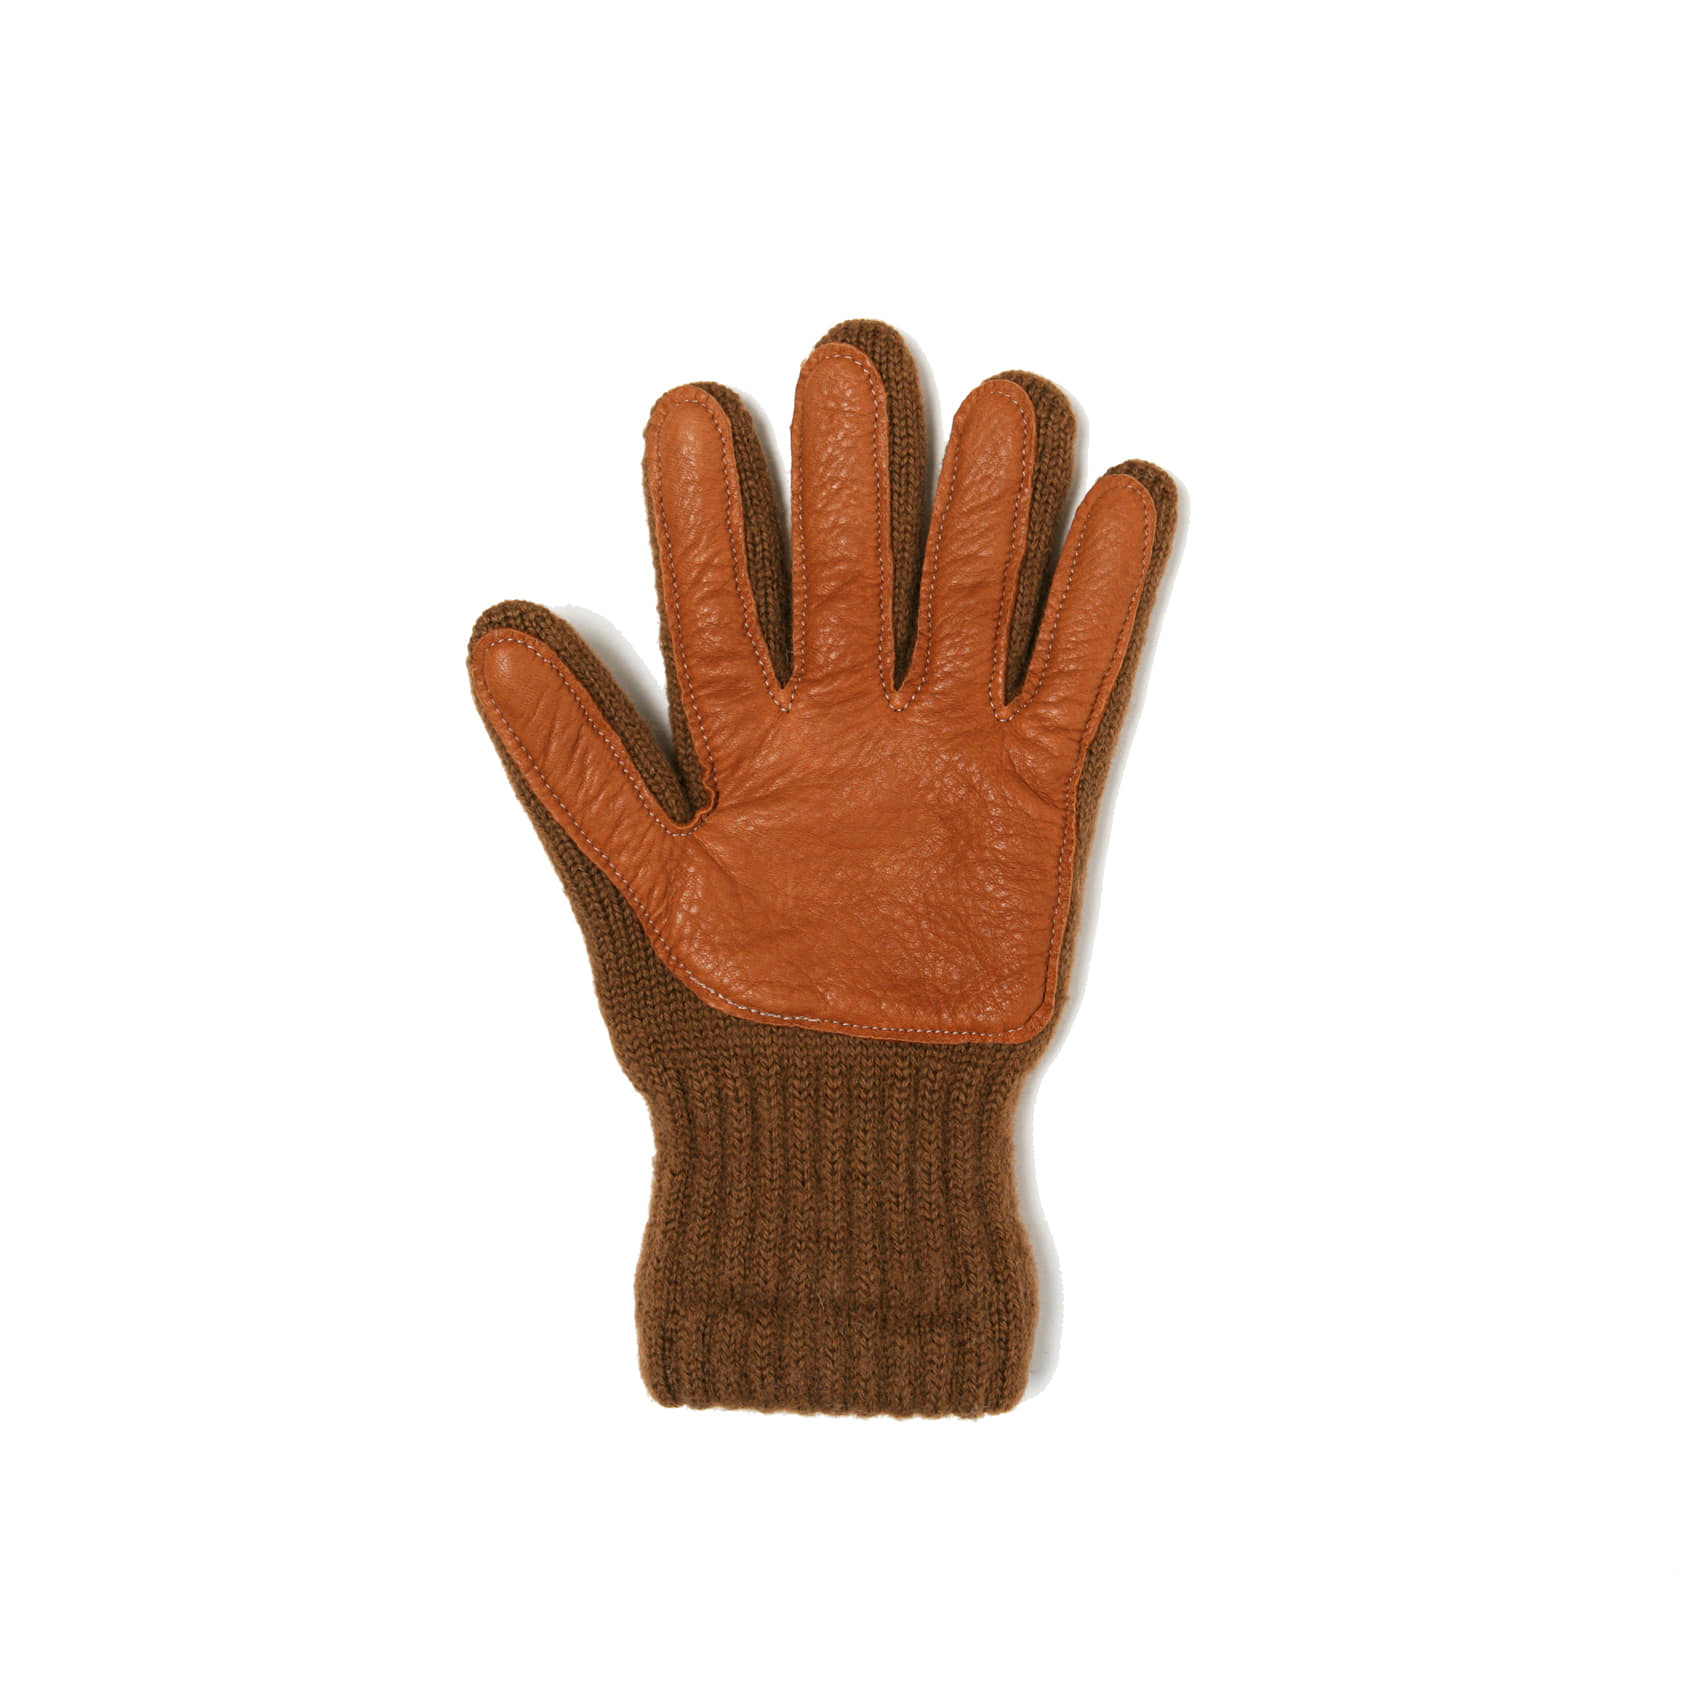 WOOL GLOVES DEERSKIN PALM - OLIVE